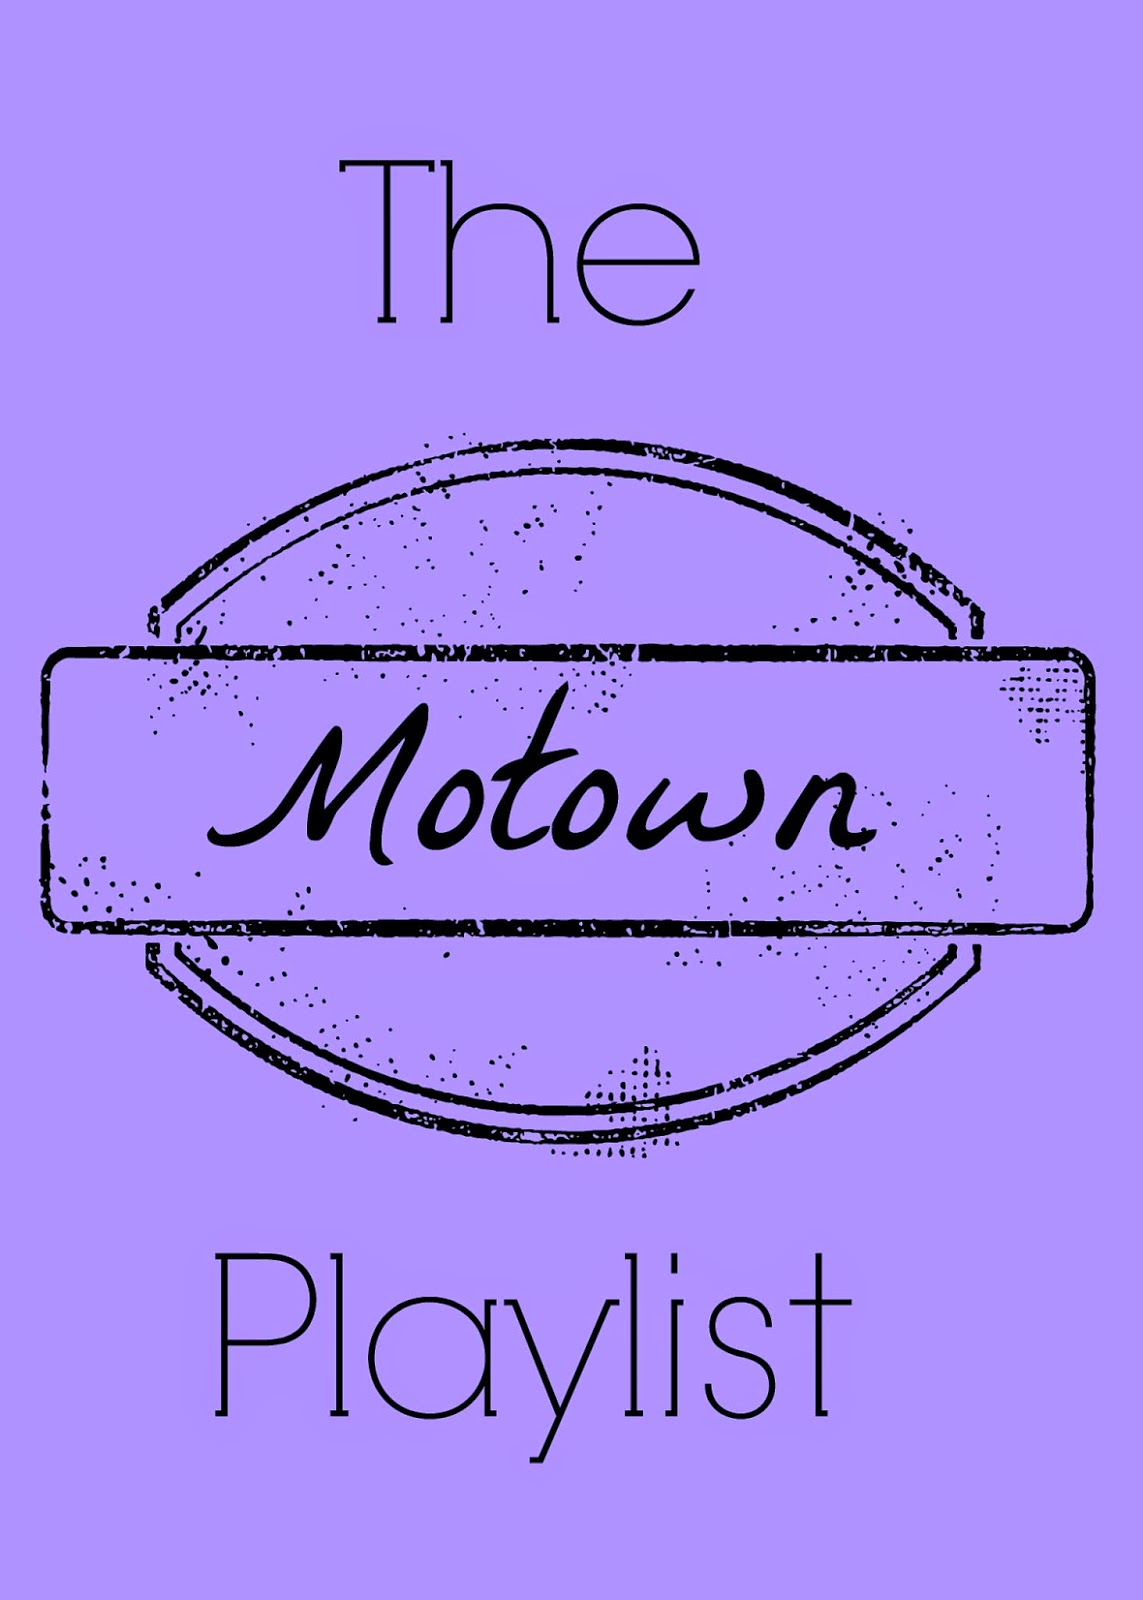 The Motown Playlist